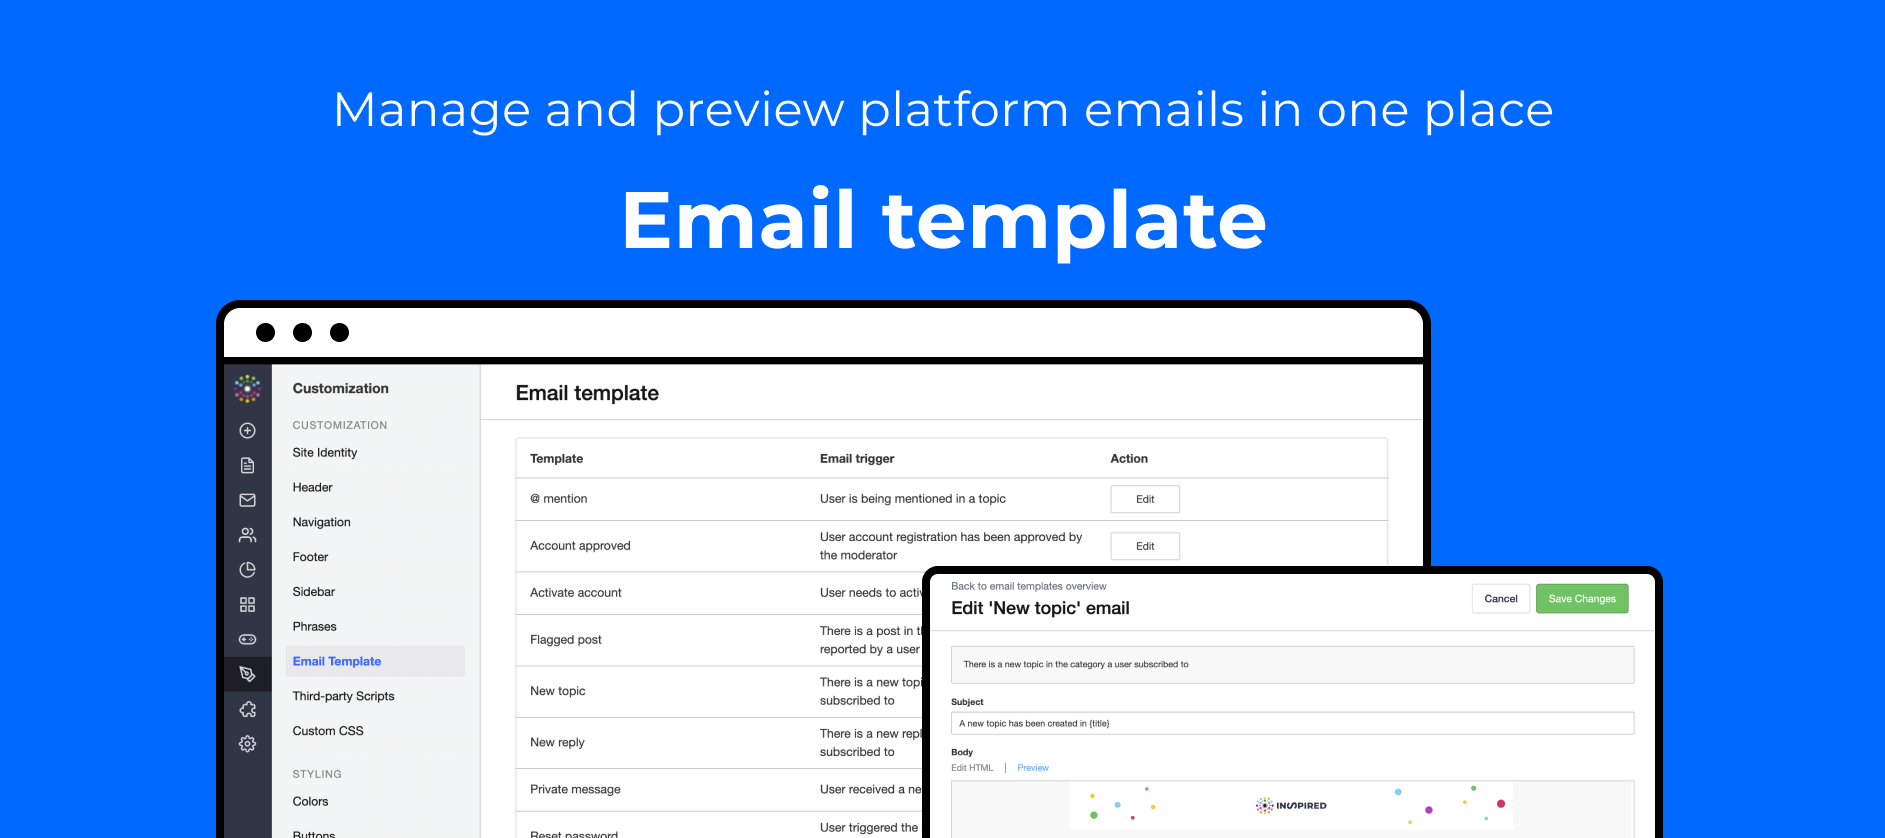 Manage and preview platform emails with our new Email Template overview